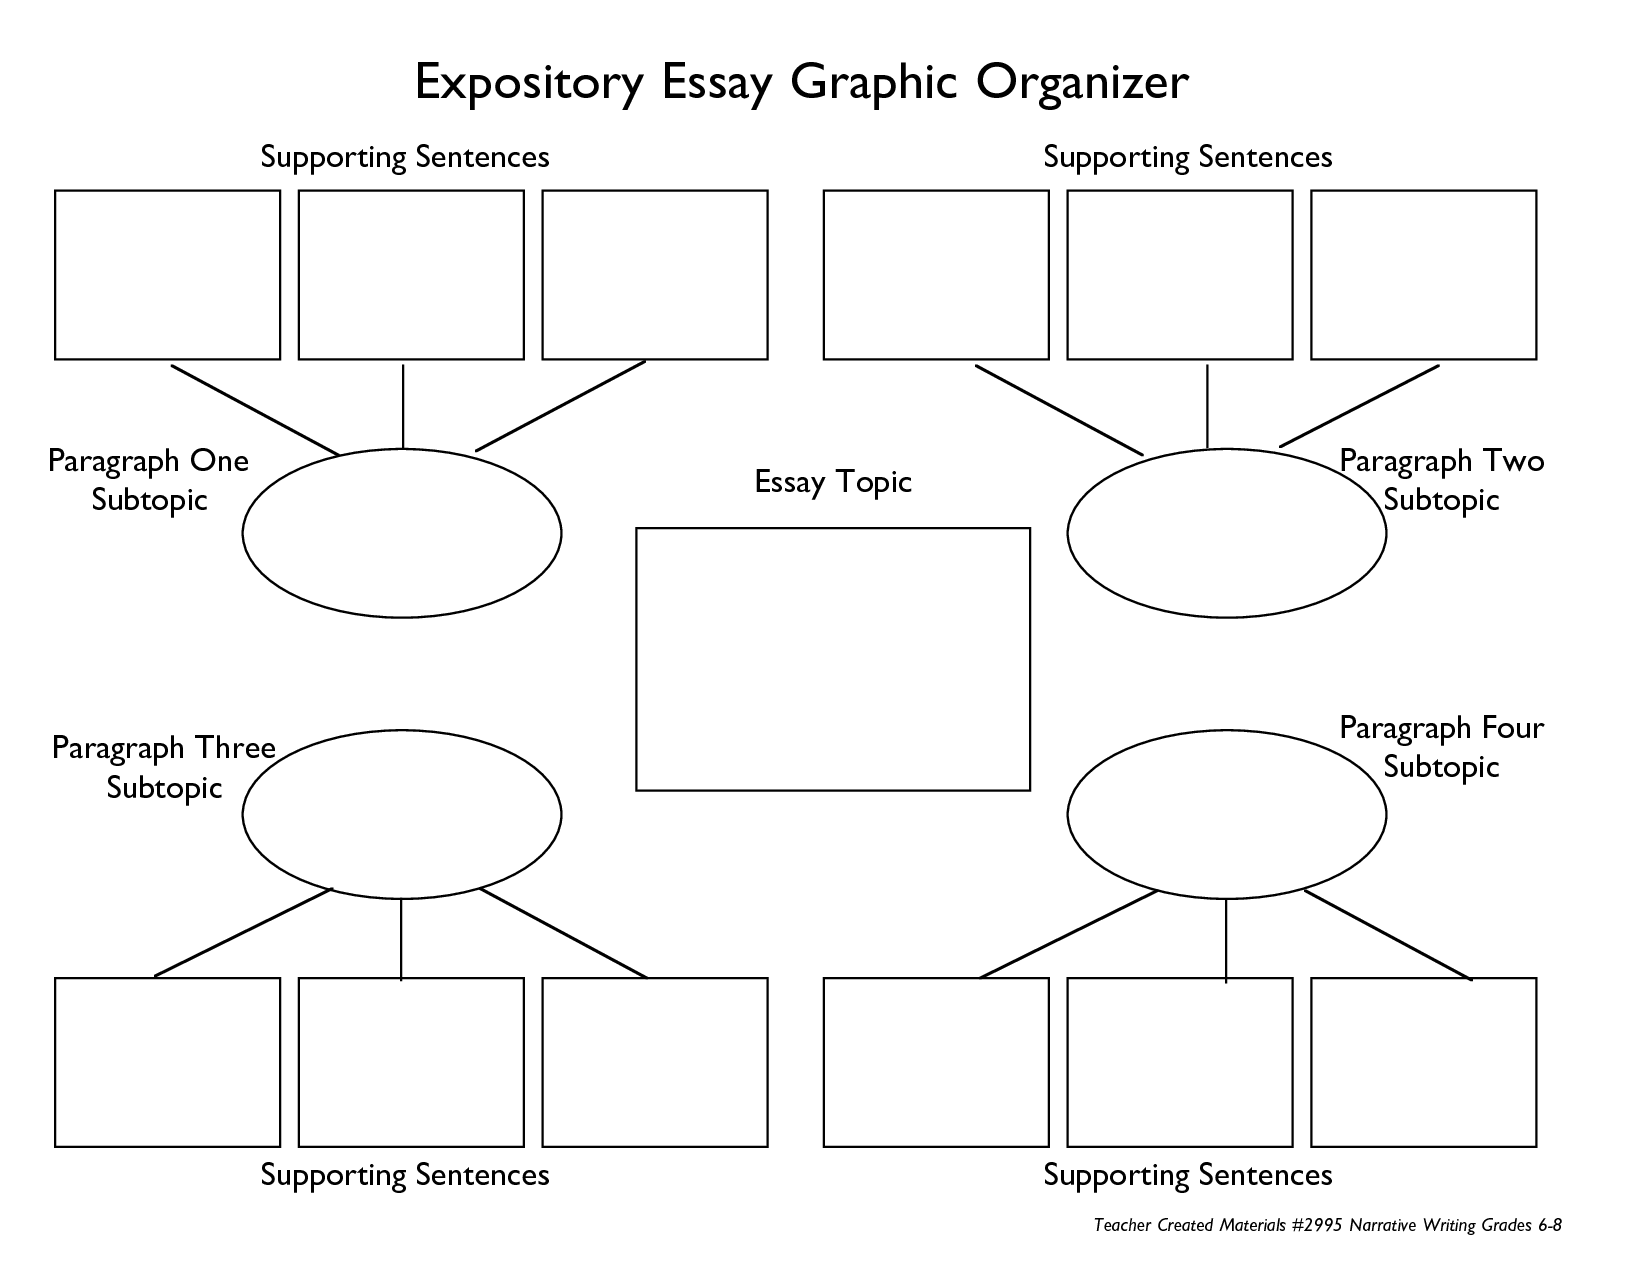 types of graphic organizers for writing essays Graphic organizers they help students organize their thoughts and ideas for answering questions, function as a pre-writing tool for essays, and provide a visual display of information they can be an easy way to differentiate instruction for a variety of learning styles as well.